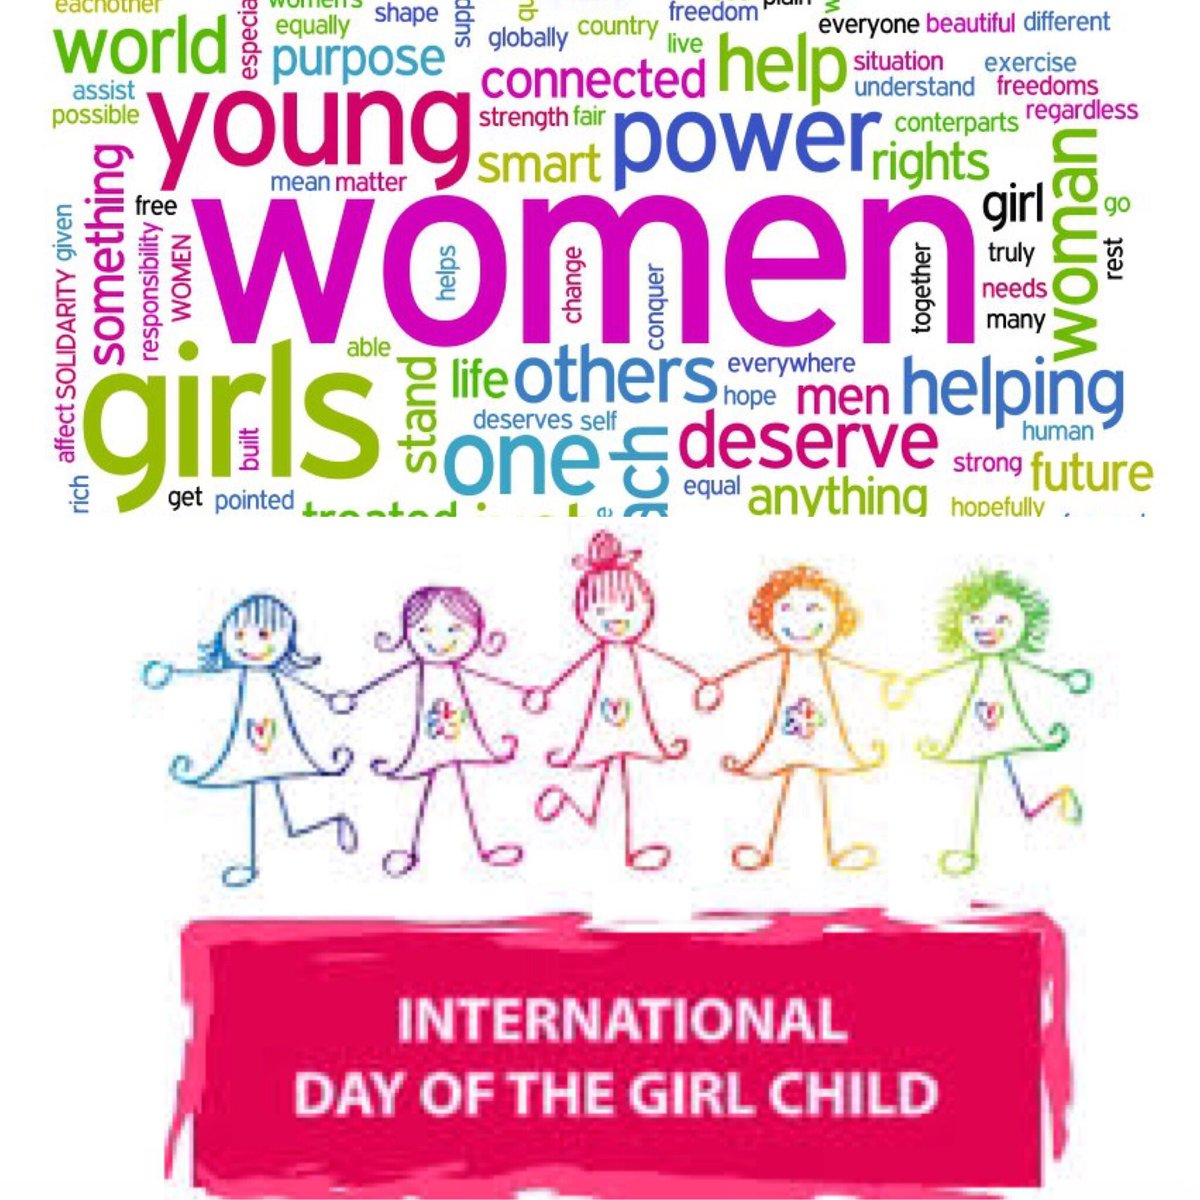 Frontdoorrealty hashtag on twitter frontdoorrealty supports empowerment of women around the globe tag a woman who inspires you dayofthegirl womanownedpicitternzoaerb91e rubansaba